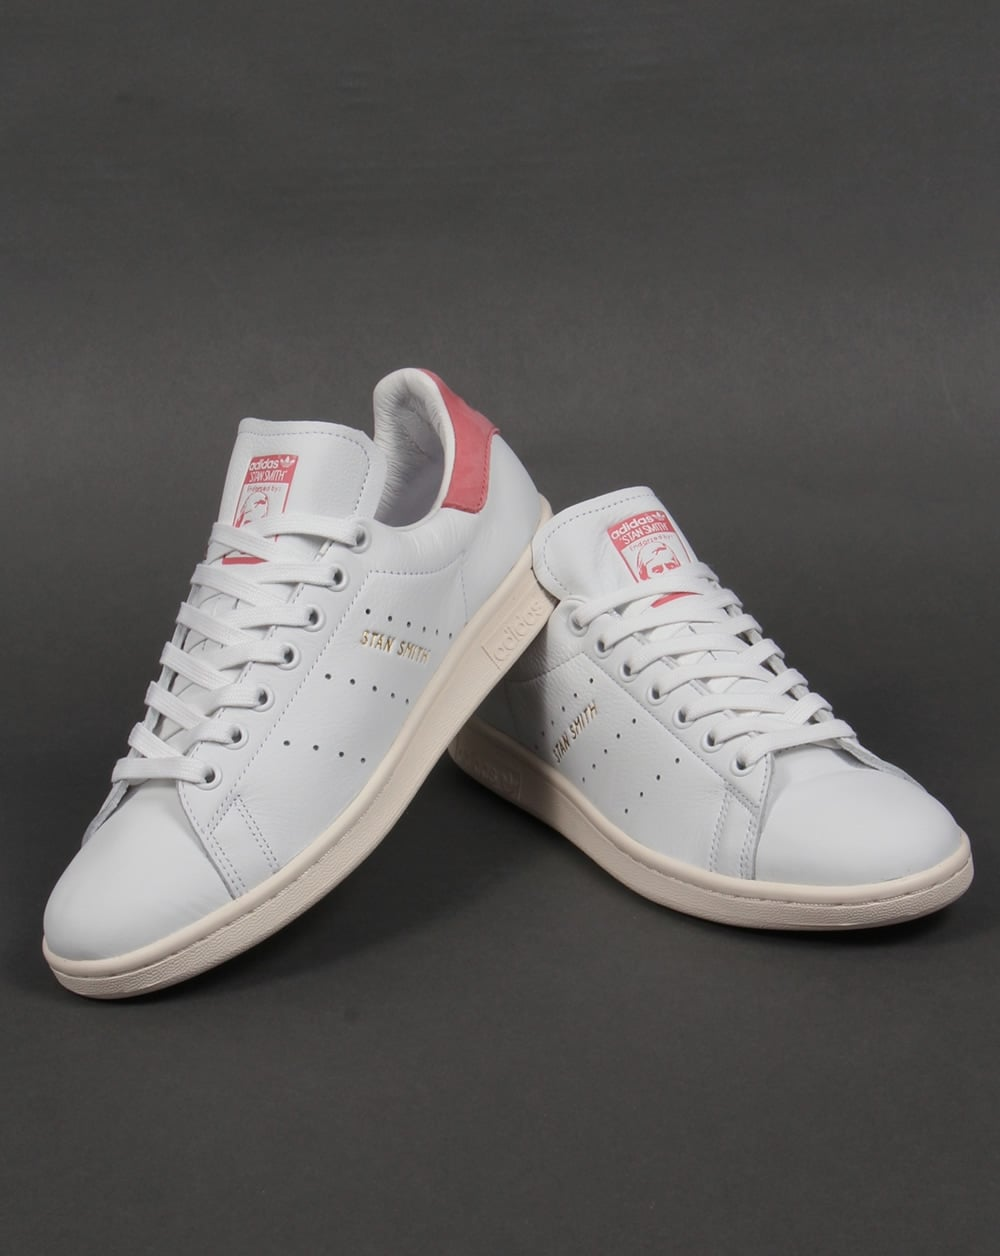 adidas stan smith trainers white pink originals shoes mens. Black Bedroom Furniture Sets. Home Design Ideas